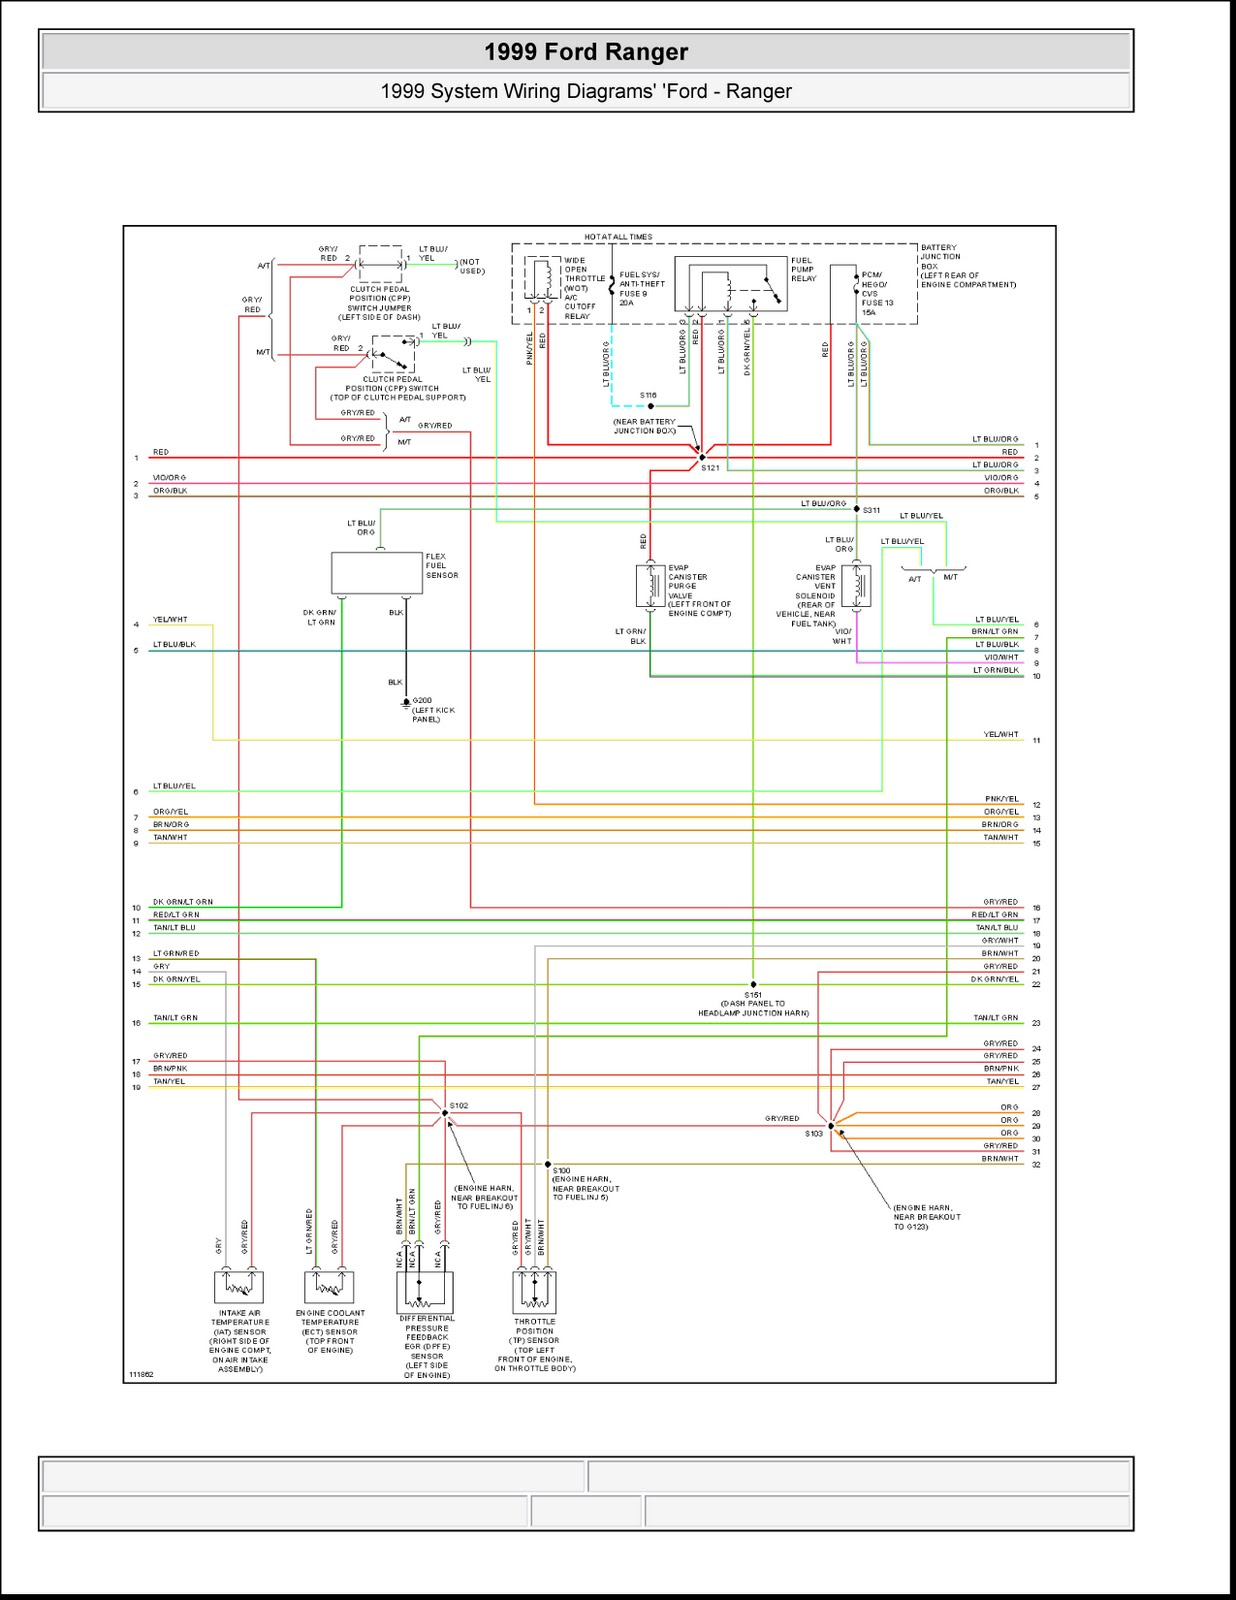 1999 Ford Ranger System Wiring Diagrams 4 Images Engine Diagram